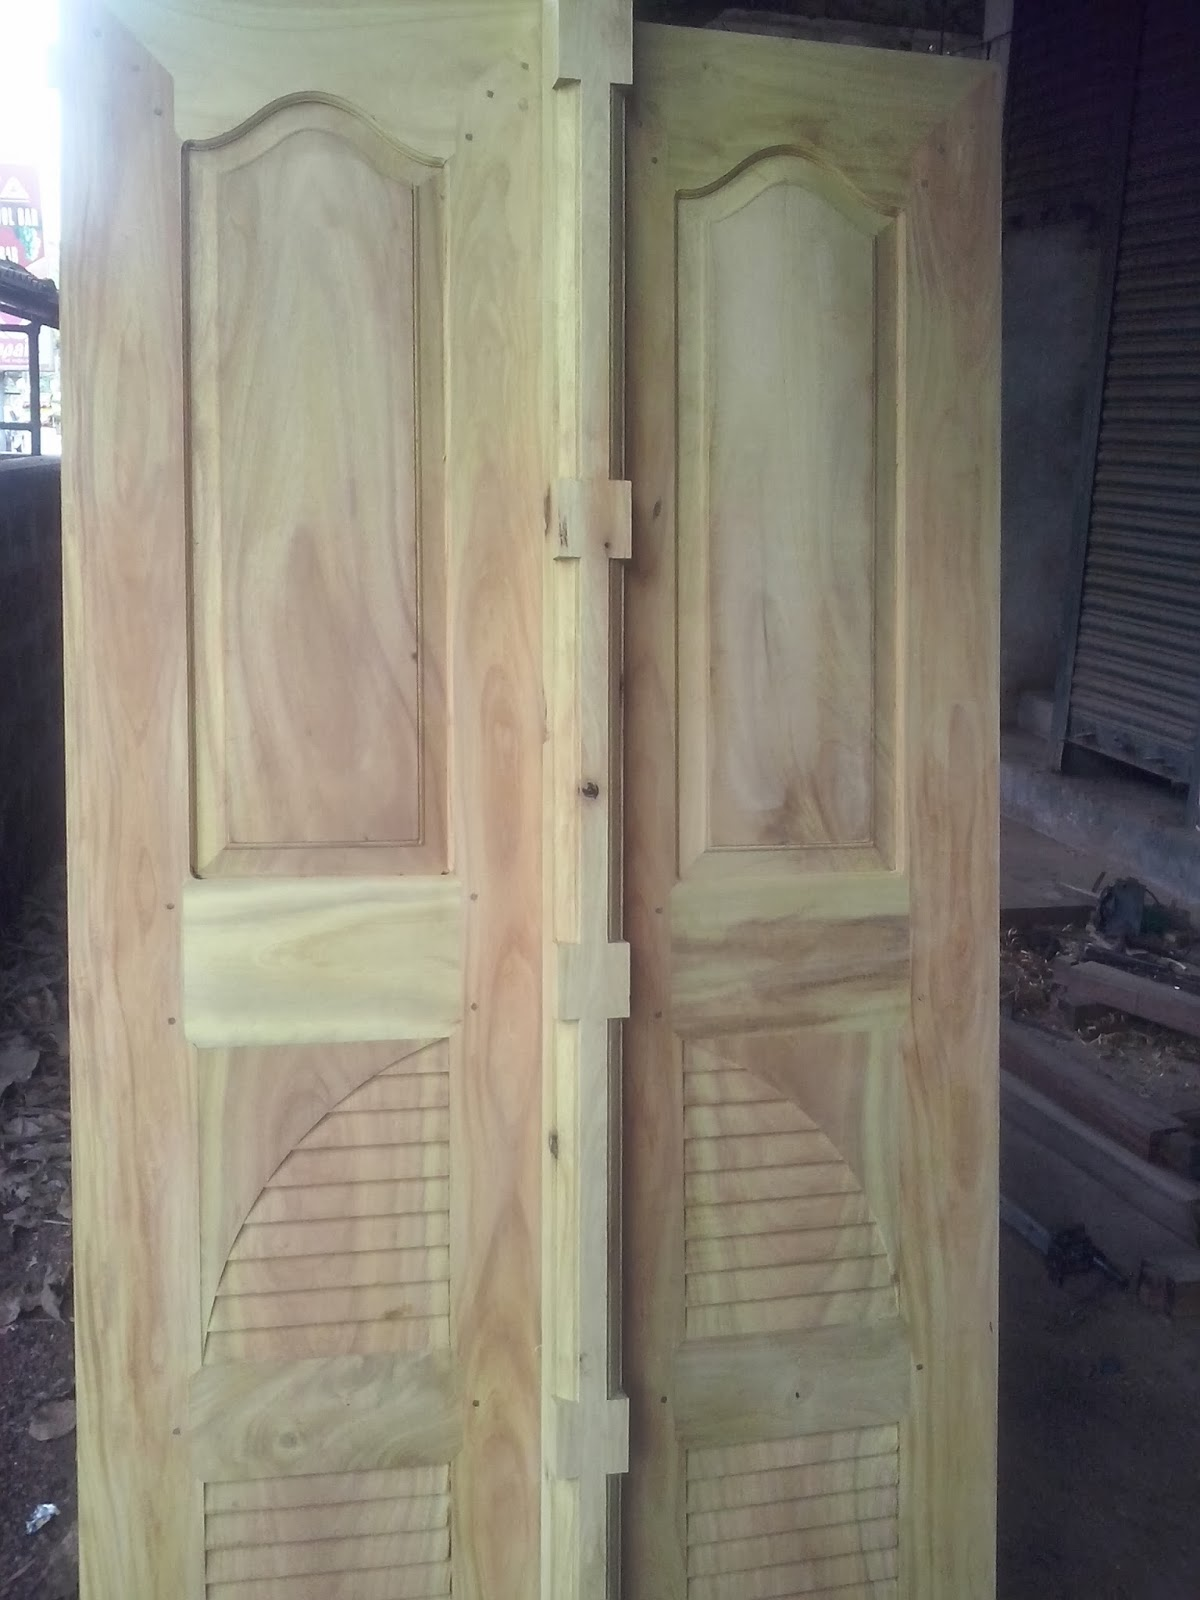 Bavas wood works main entrance wooden double door designs for Wooden double door designs for main door